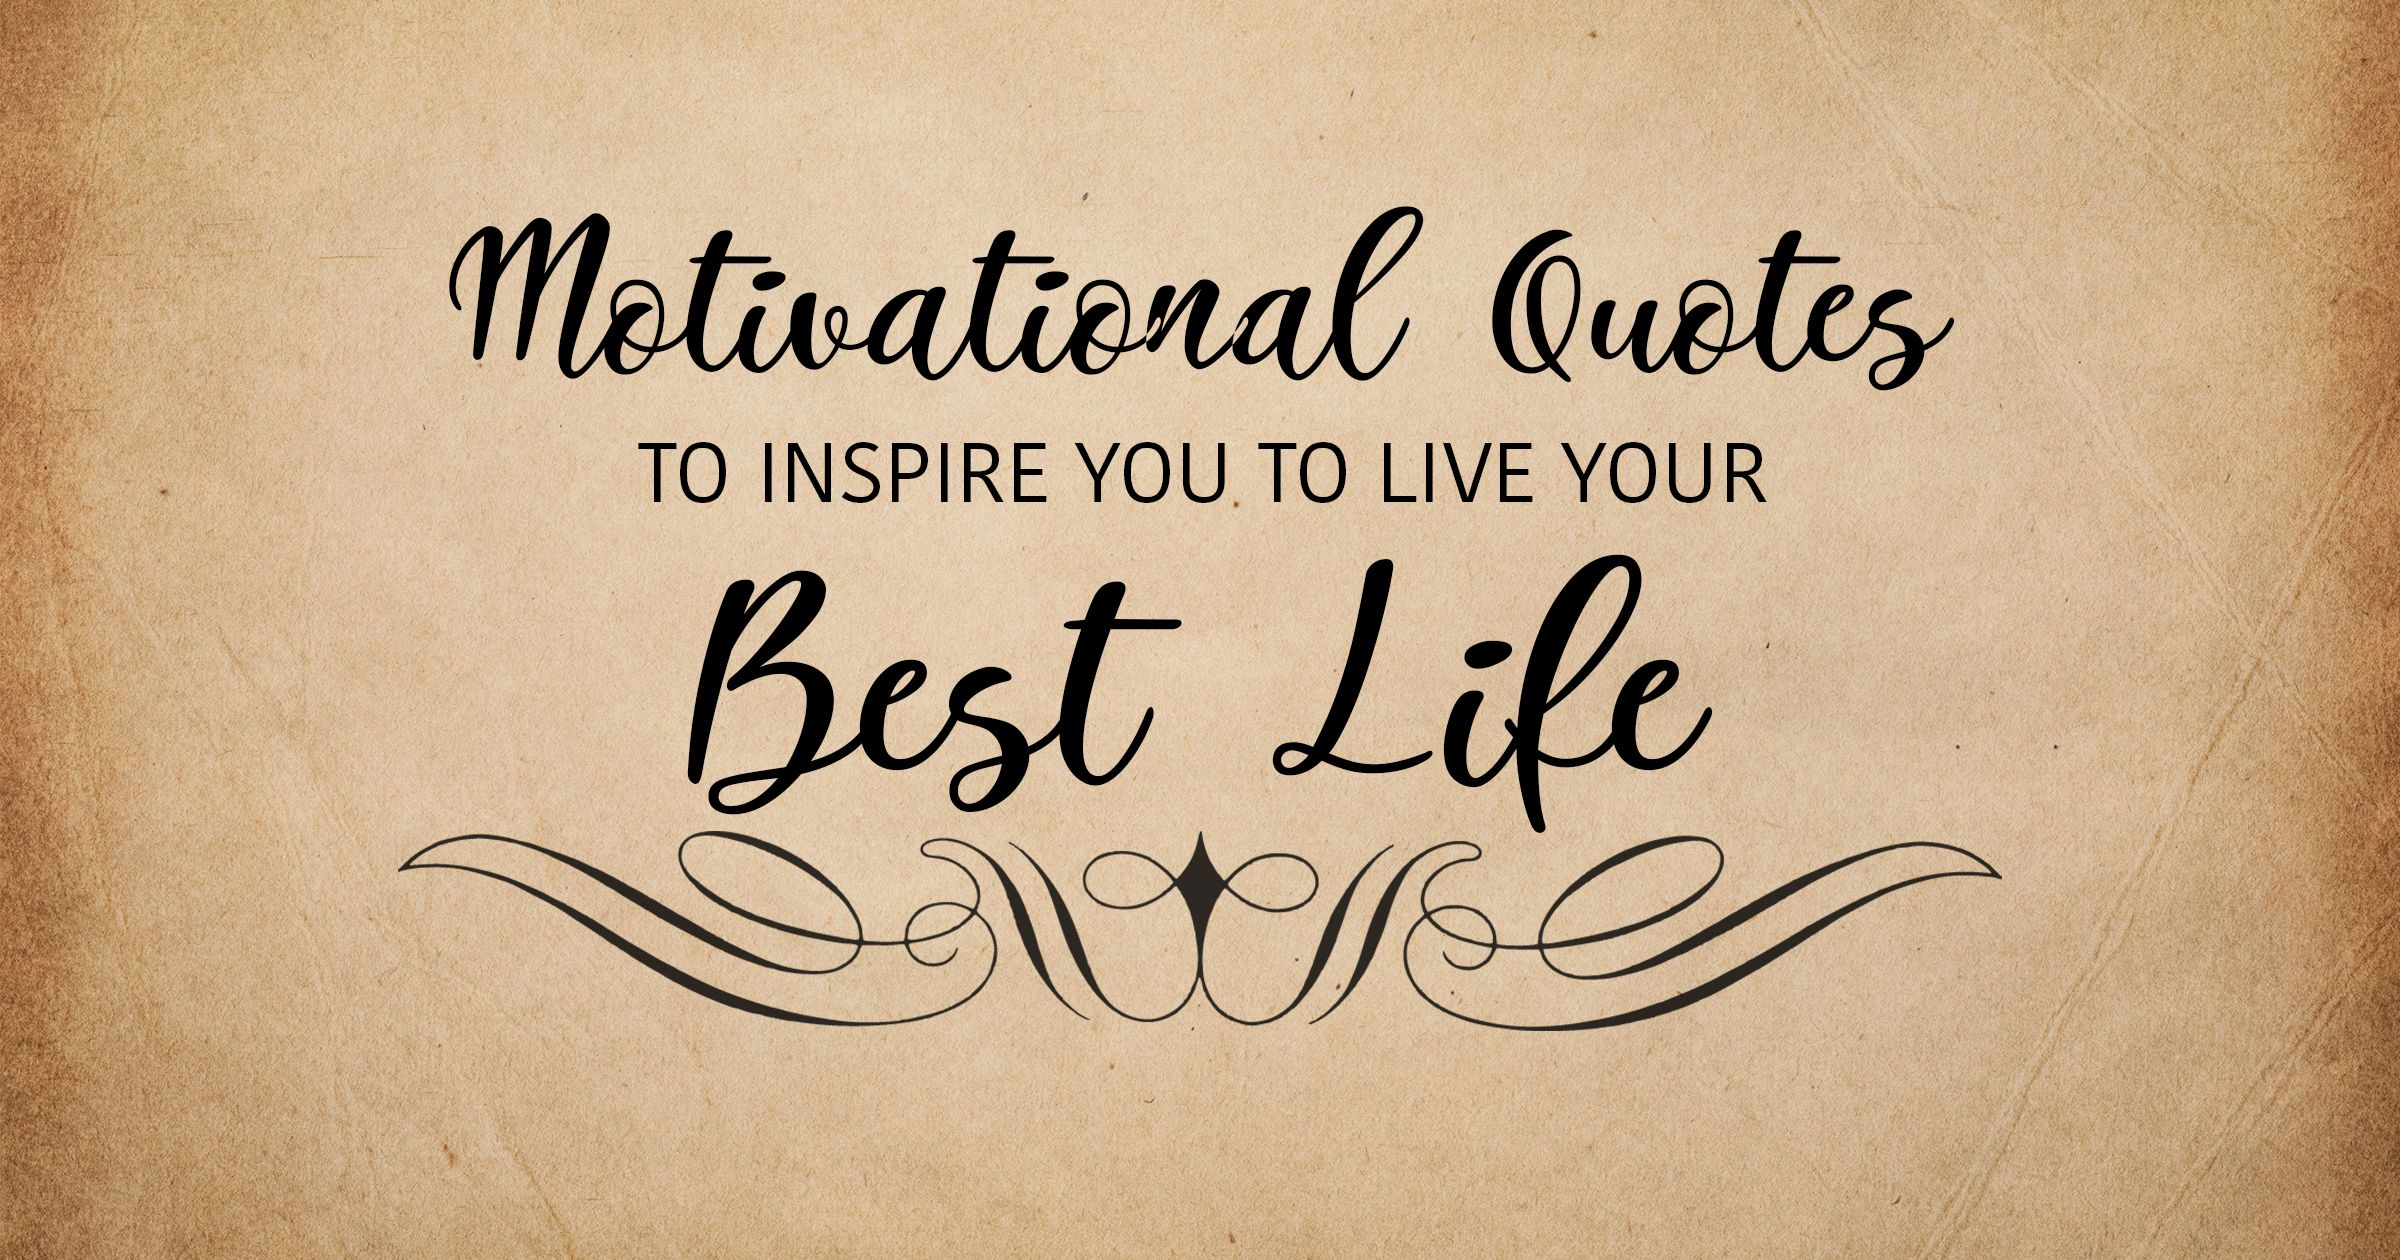 Motivational Quotes to Inspire You to Live Your Best Life